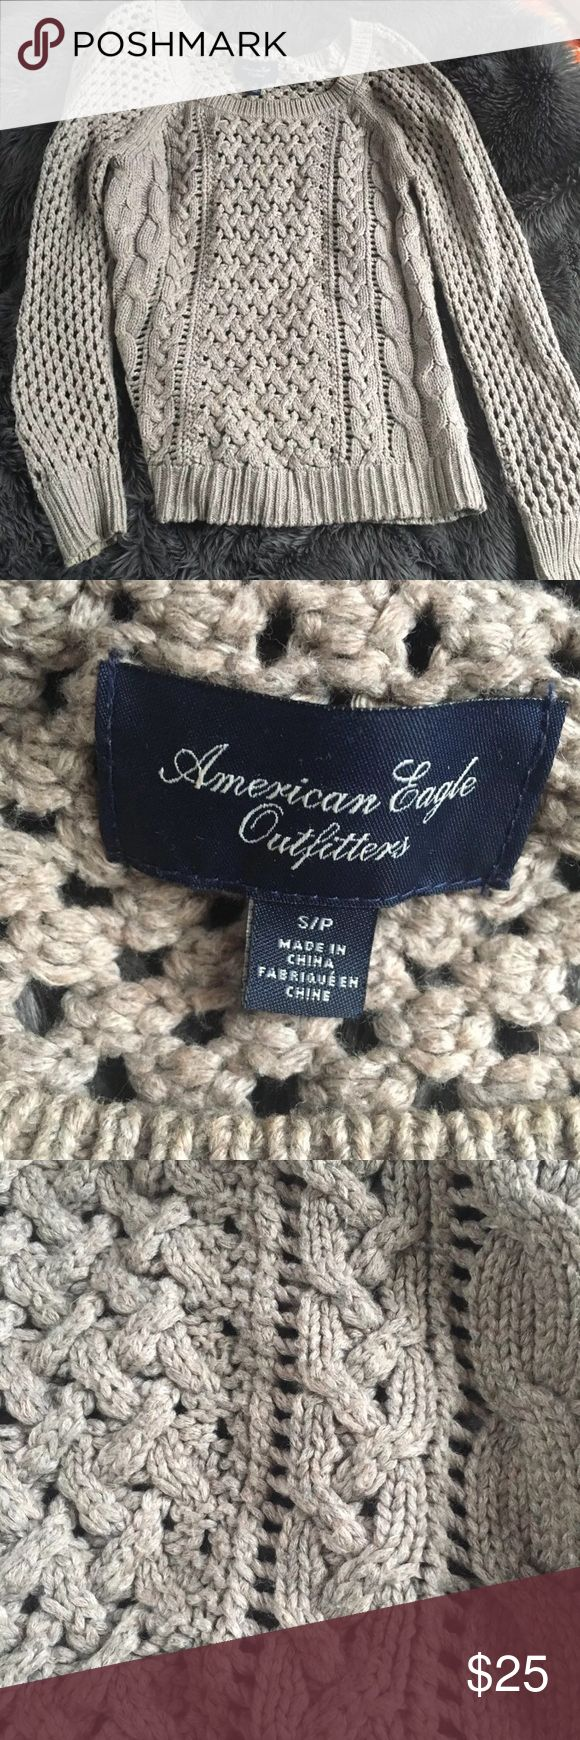 Beautiful Knitted America Eagle Sweater Beautiful Knitted America Eagle Sweater. Size small worn once. Perfect for fall would make the perfect Thanksgiving sweater American Eagle Outfitters Sweaters